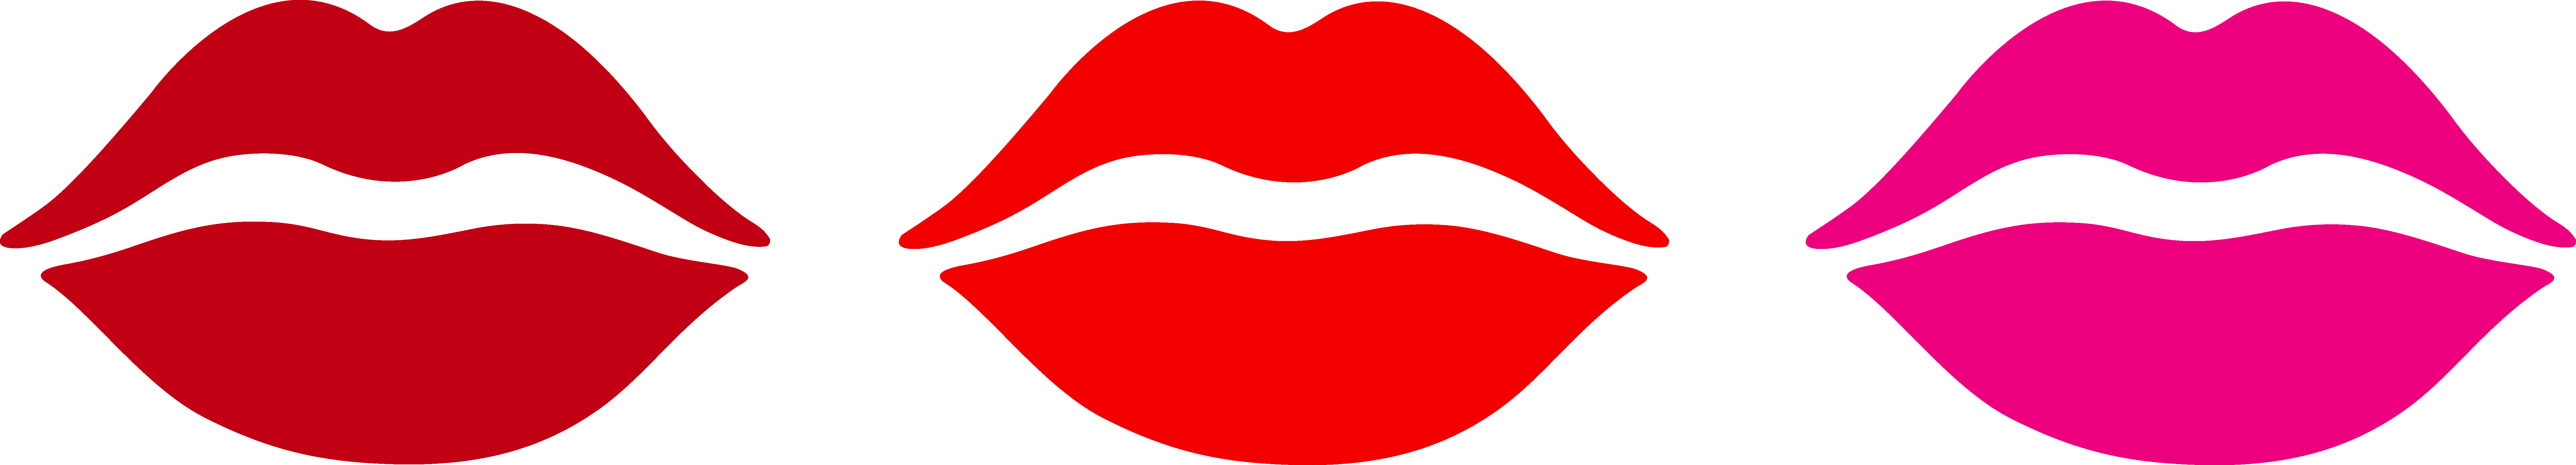 Lips drawing png. Free hershey kisses cliparts